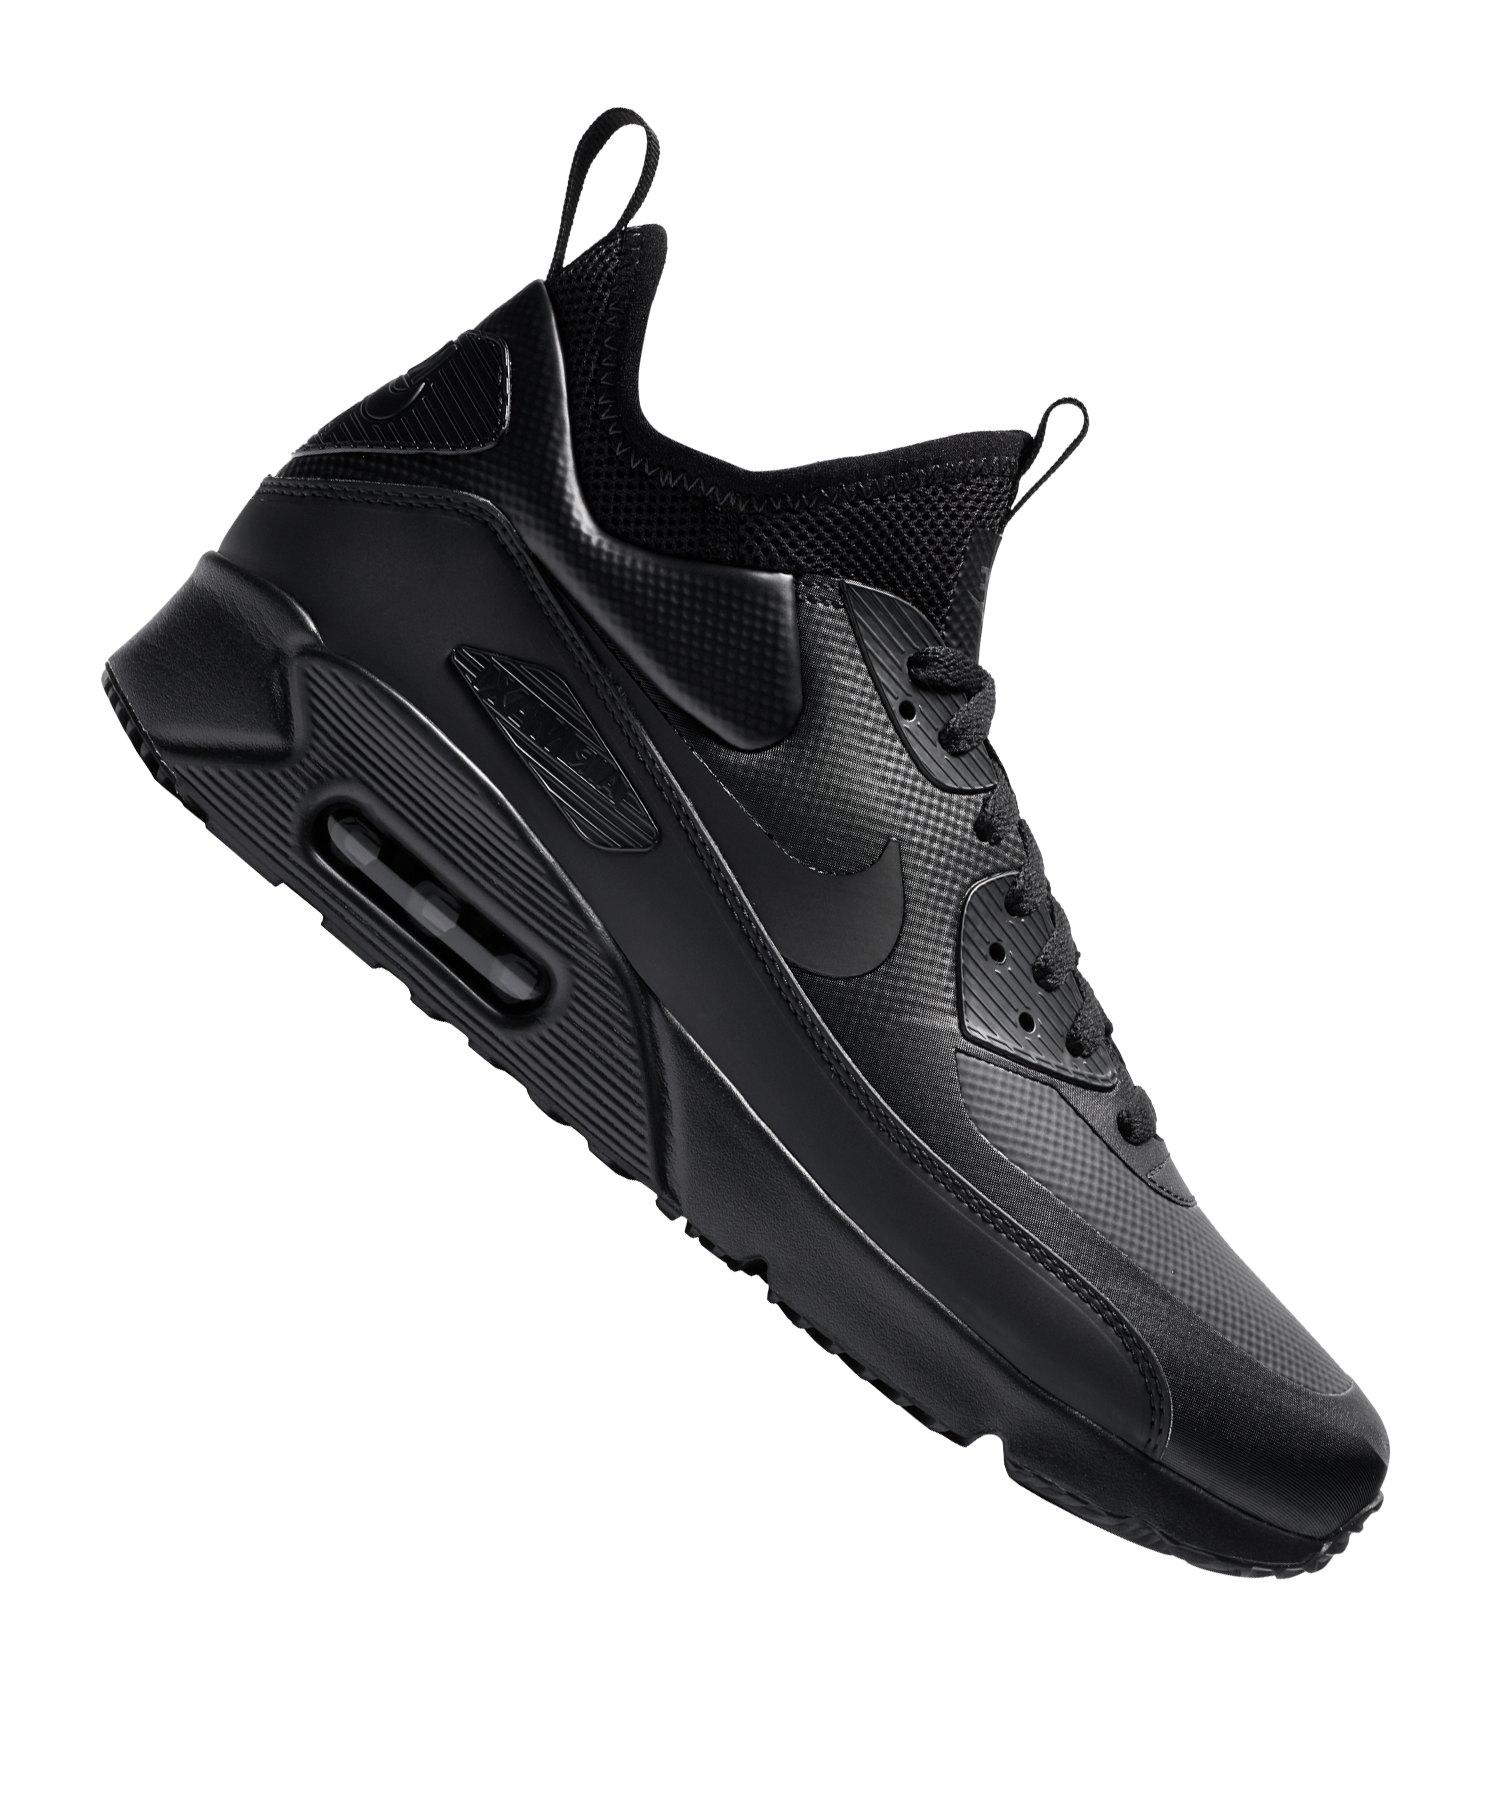 Nike Air Max 90 Ultra Mid Winter Sneaker F004